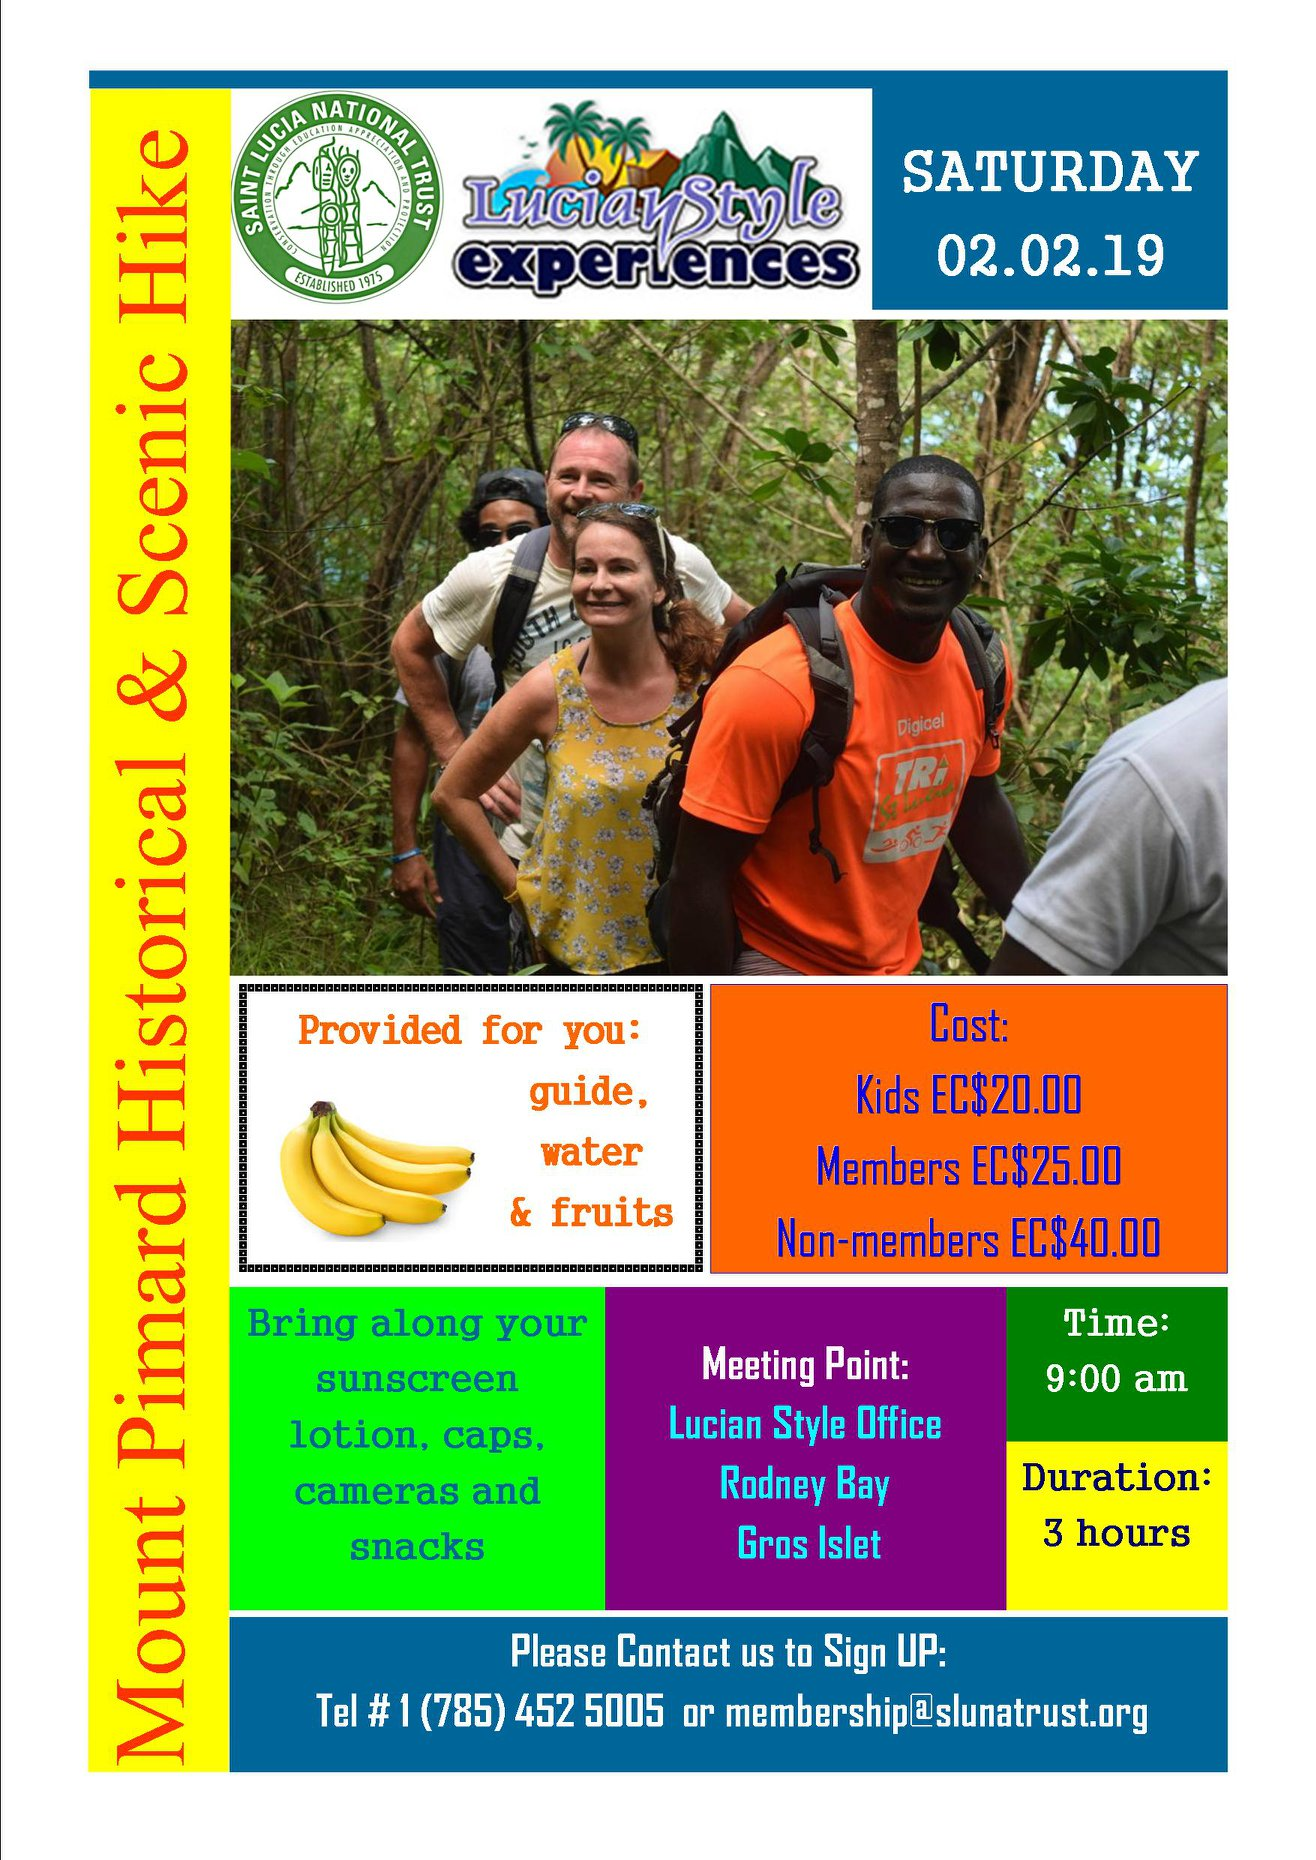 Come enjoy an exhilarating and scenic hike accompanied by our well-trained guides up to the breathtakingly beautiful summit of nature reserve known as Mount Pimard – located conveniently in St. Lucia's Tourism capital of Rodney Bay. Organised by the Saint Lucia National Trust